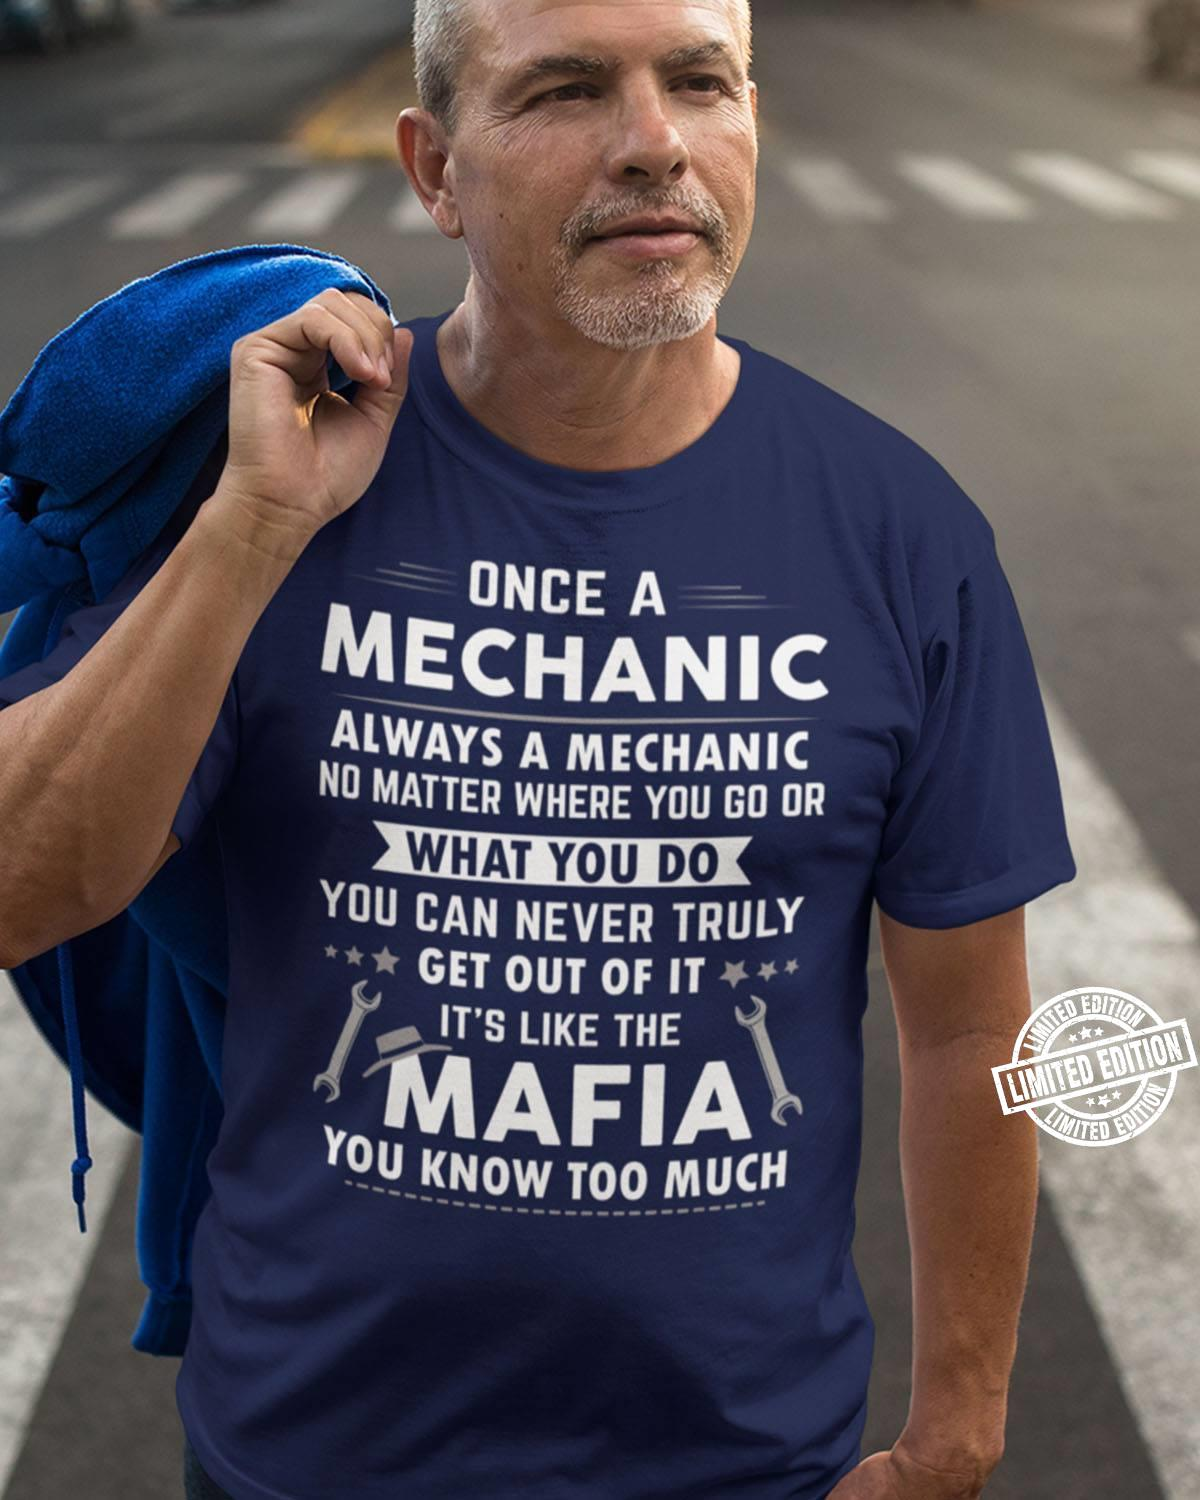 Once a mechanic always a mechanic no matter where you go or what you do shirt